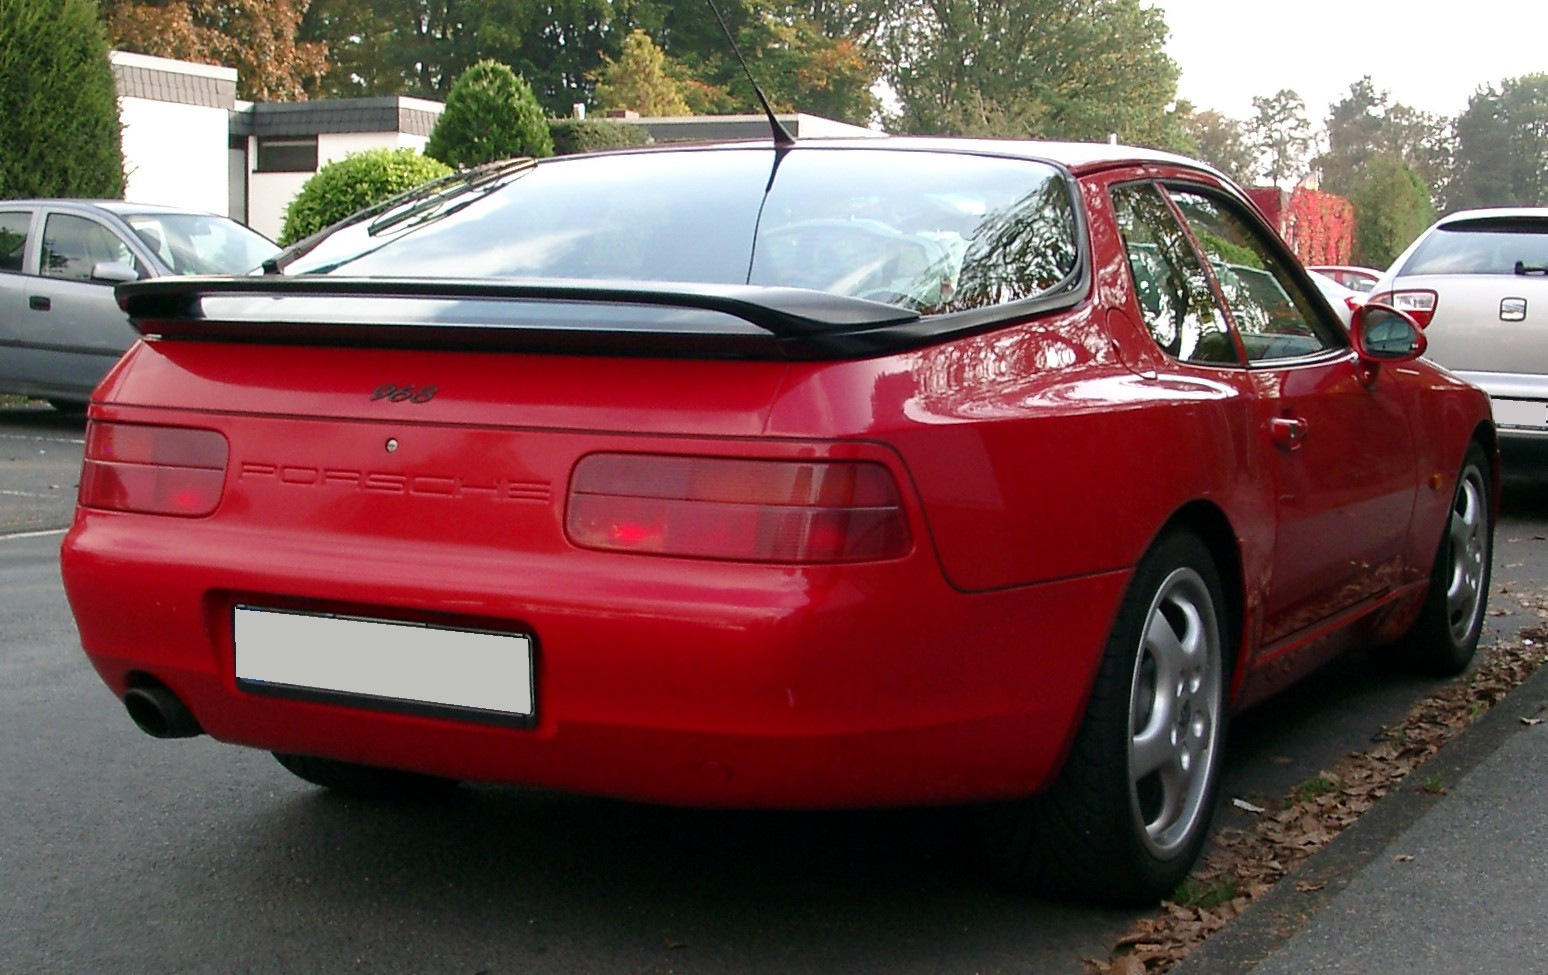 file:porsche 968 rear 20071004 - wikimedia commons